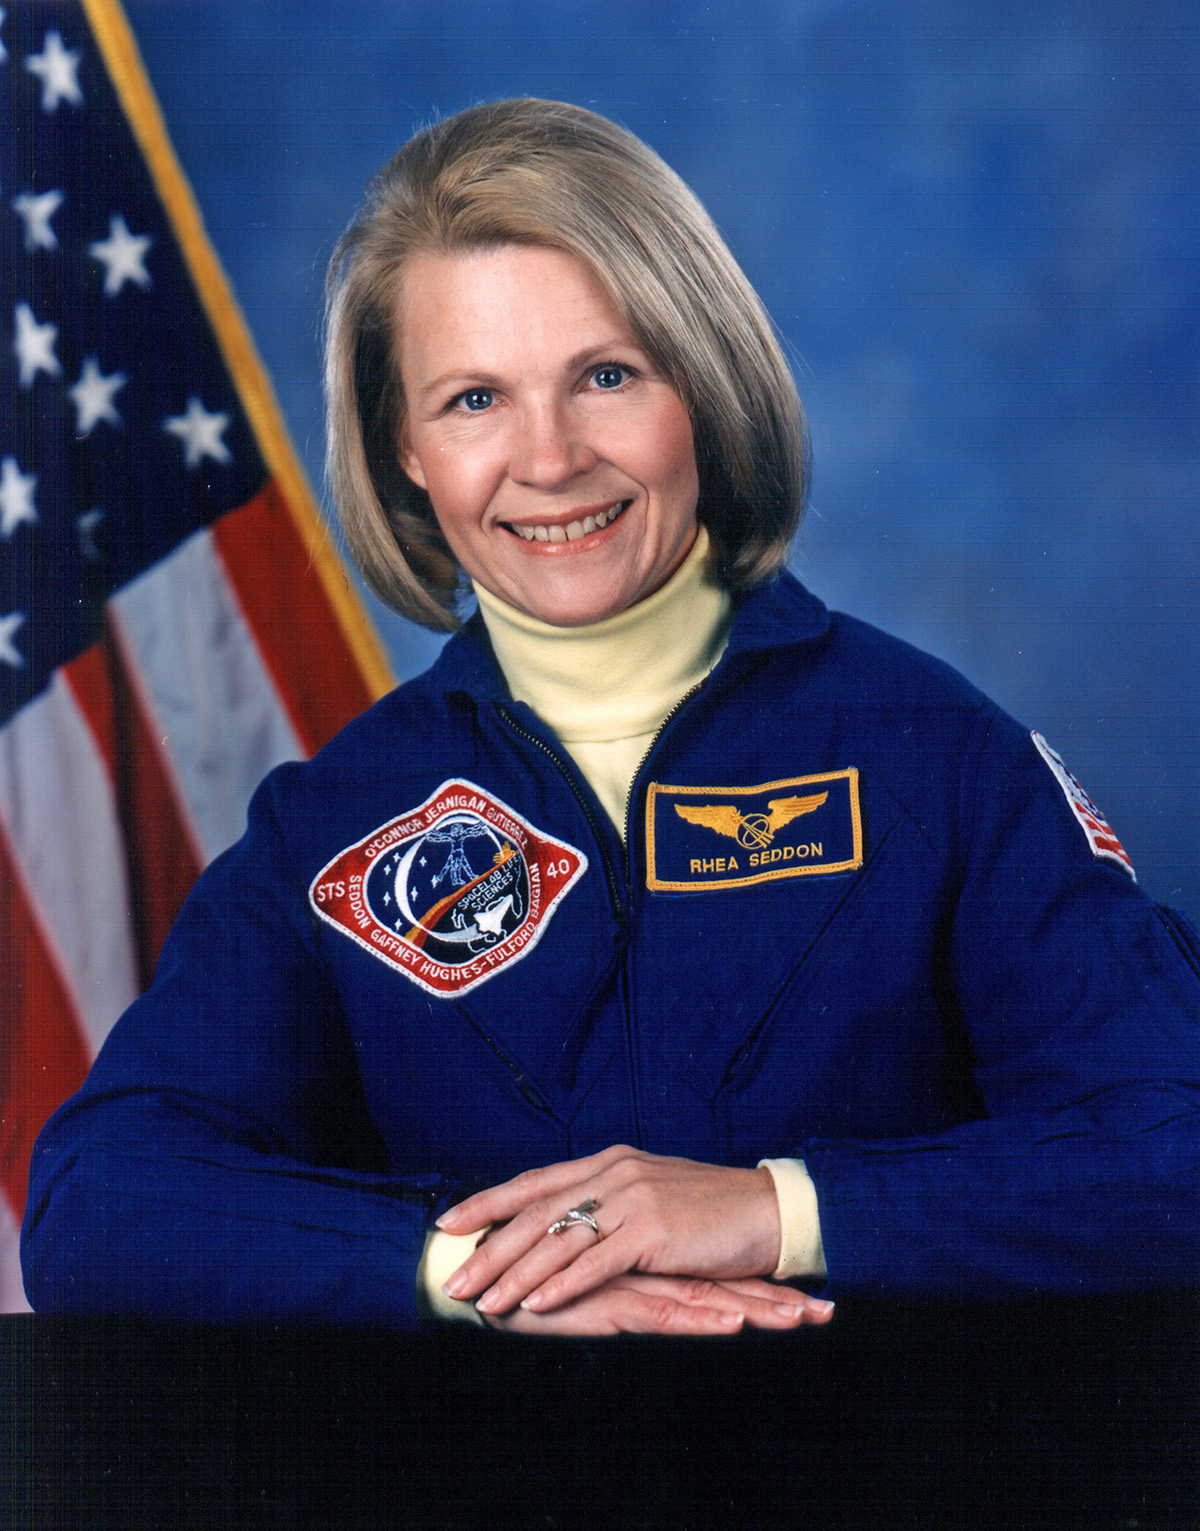 Astronaut Rhea Seddon to address girls and young women in Murfreesboro